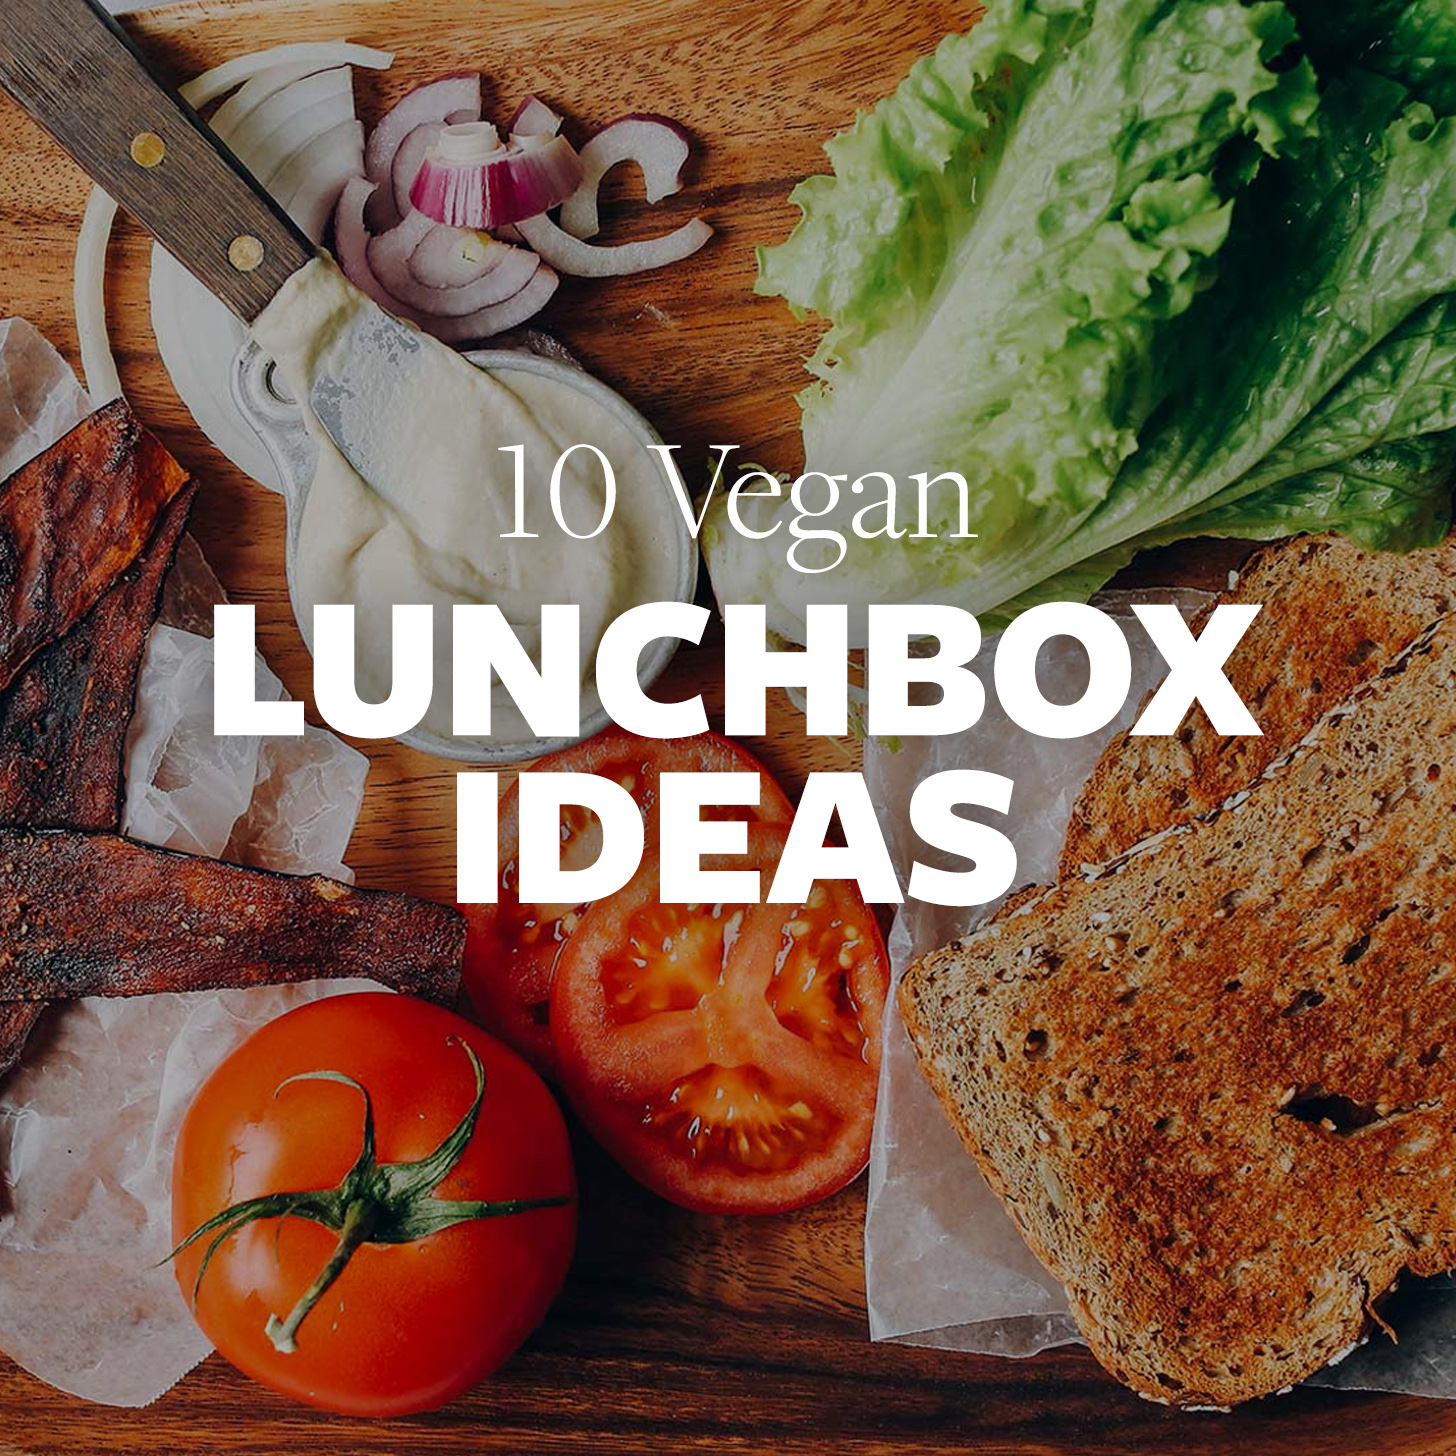 Sandwich fixings on a wood cutting board for our 10 Vegan Lunchbox Ideas roundup